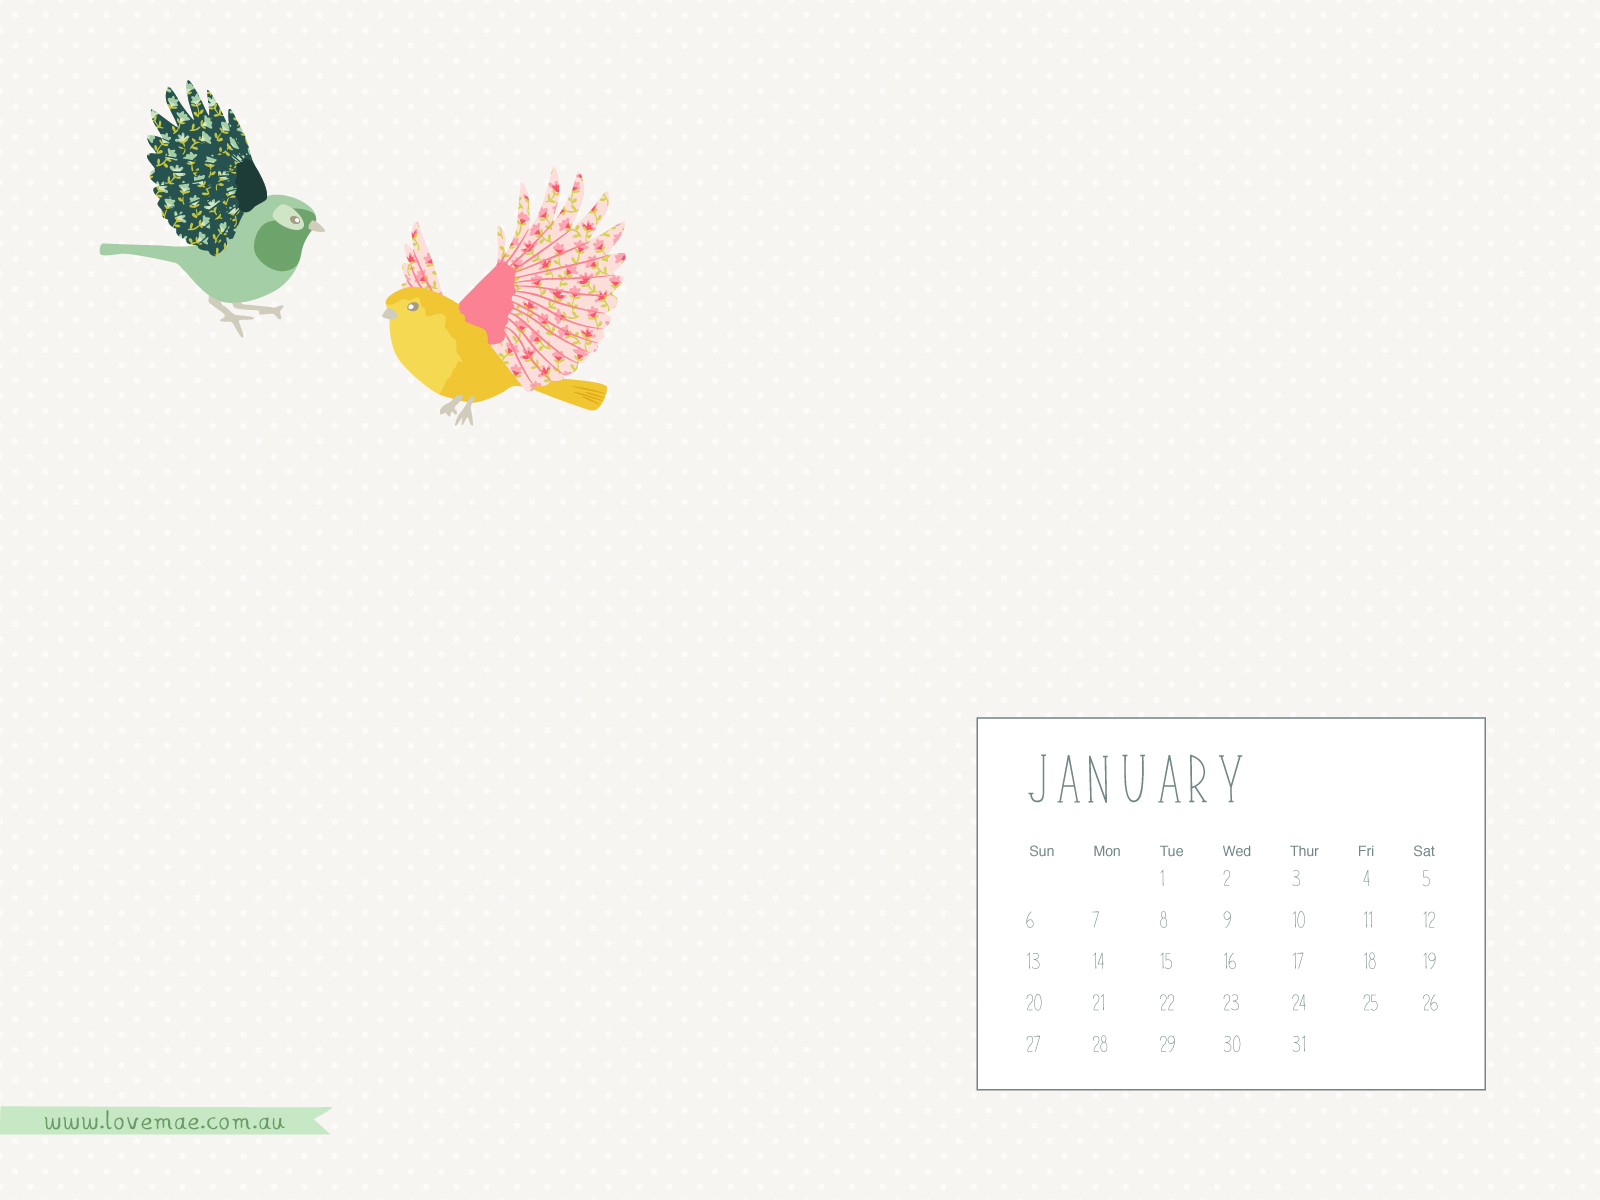 Calendar Wallpaper Love Mae : Desktop calendars january love mae